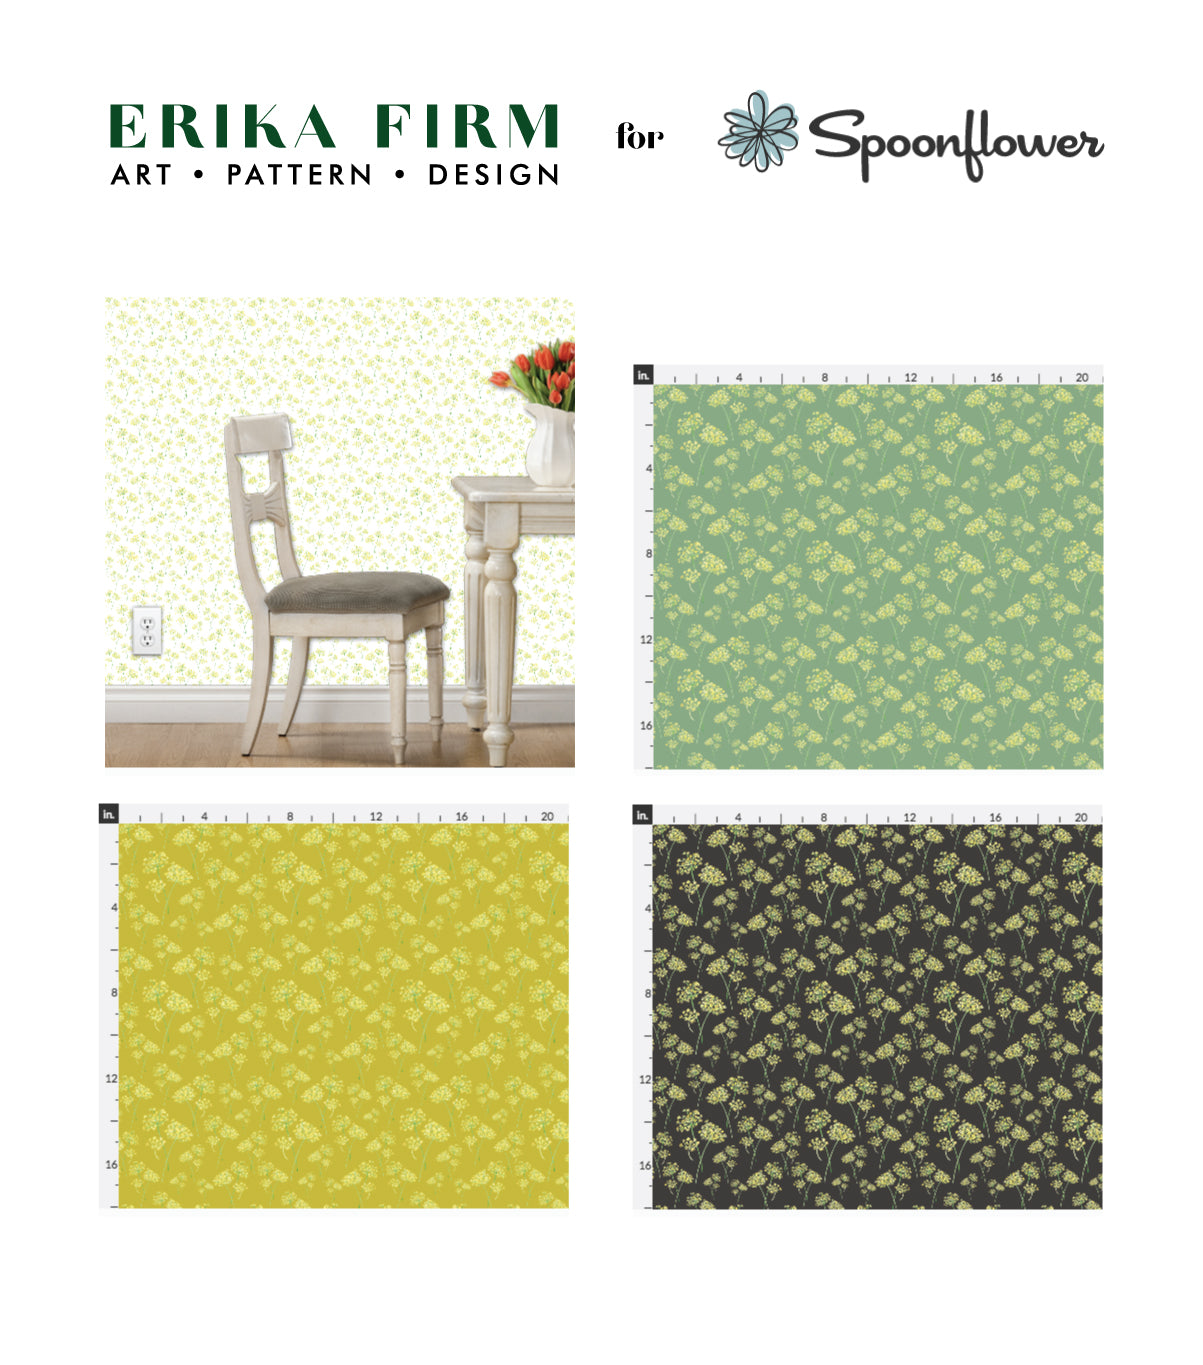 Dill weed pattern by Erika Firm for Spoonflower fabric wallpaper gift wrap